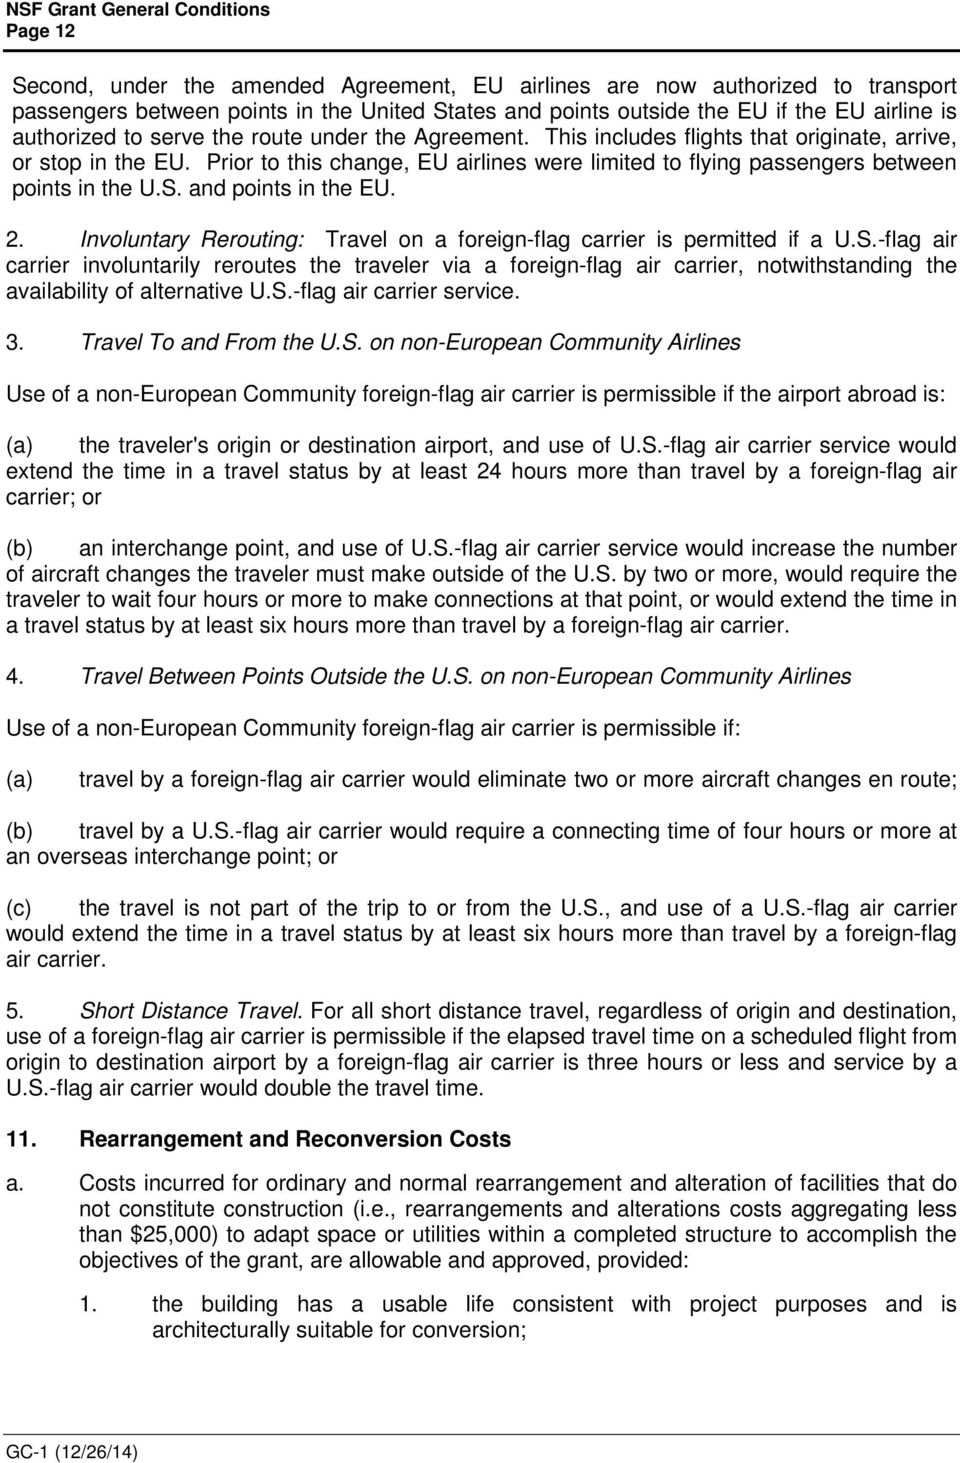 and points in the EU. 2. Involuntary Rerouting: Travel on a foreign-flag carrier is permitted if a U.S.